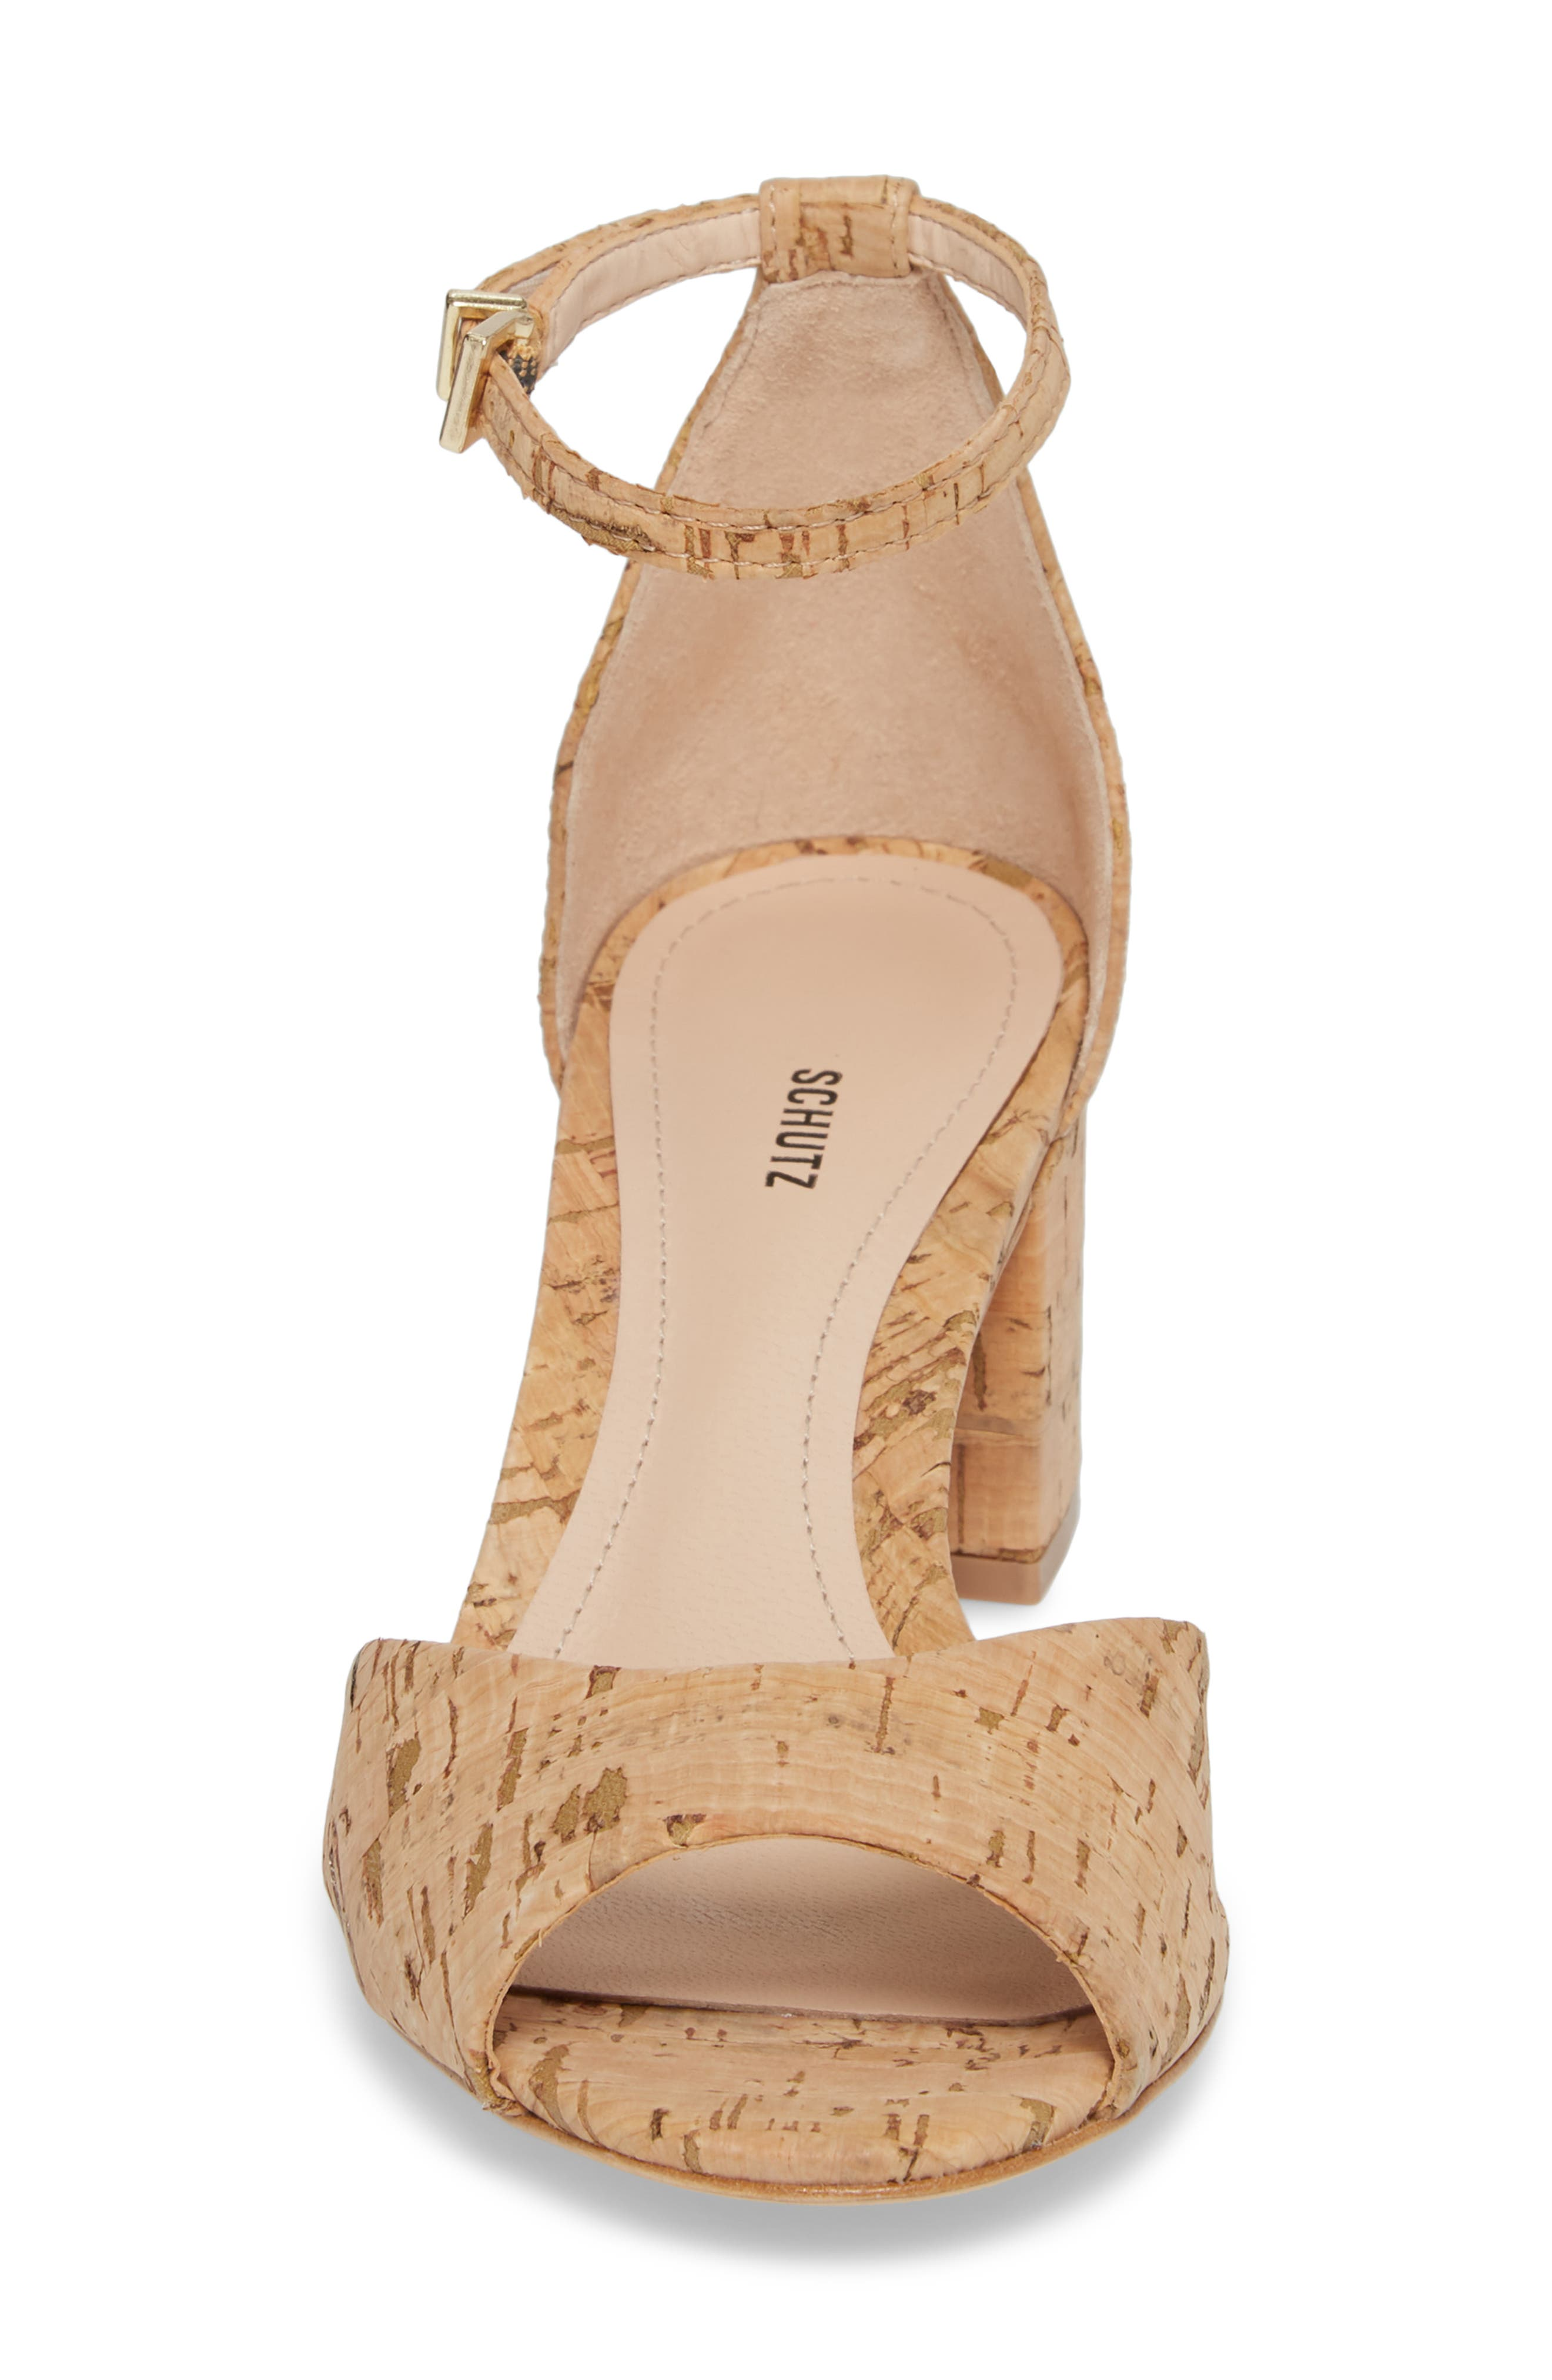 Roama Block Heel Sandal,                             Alternate thumbnail 4, color,                             Natural